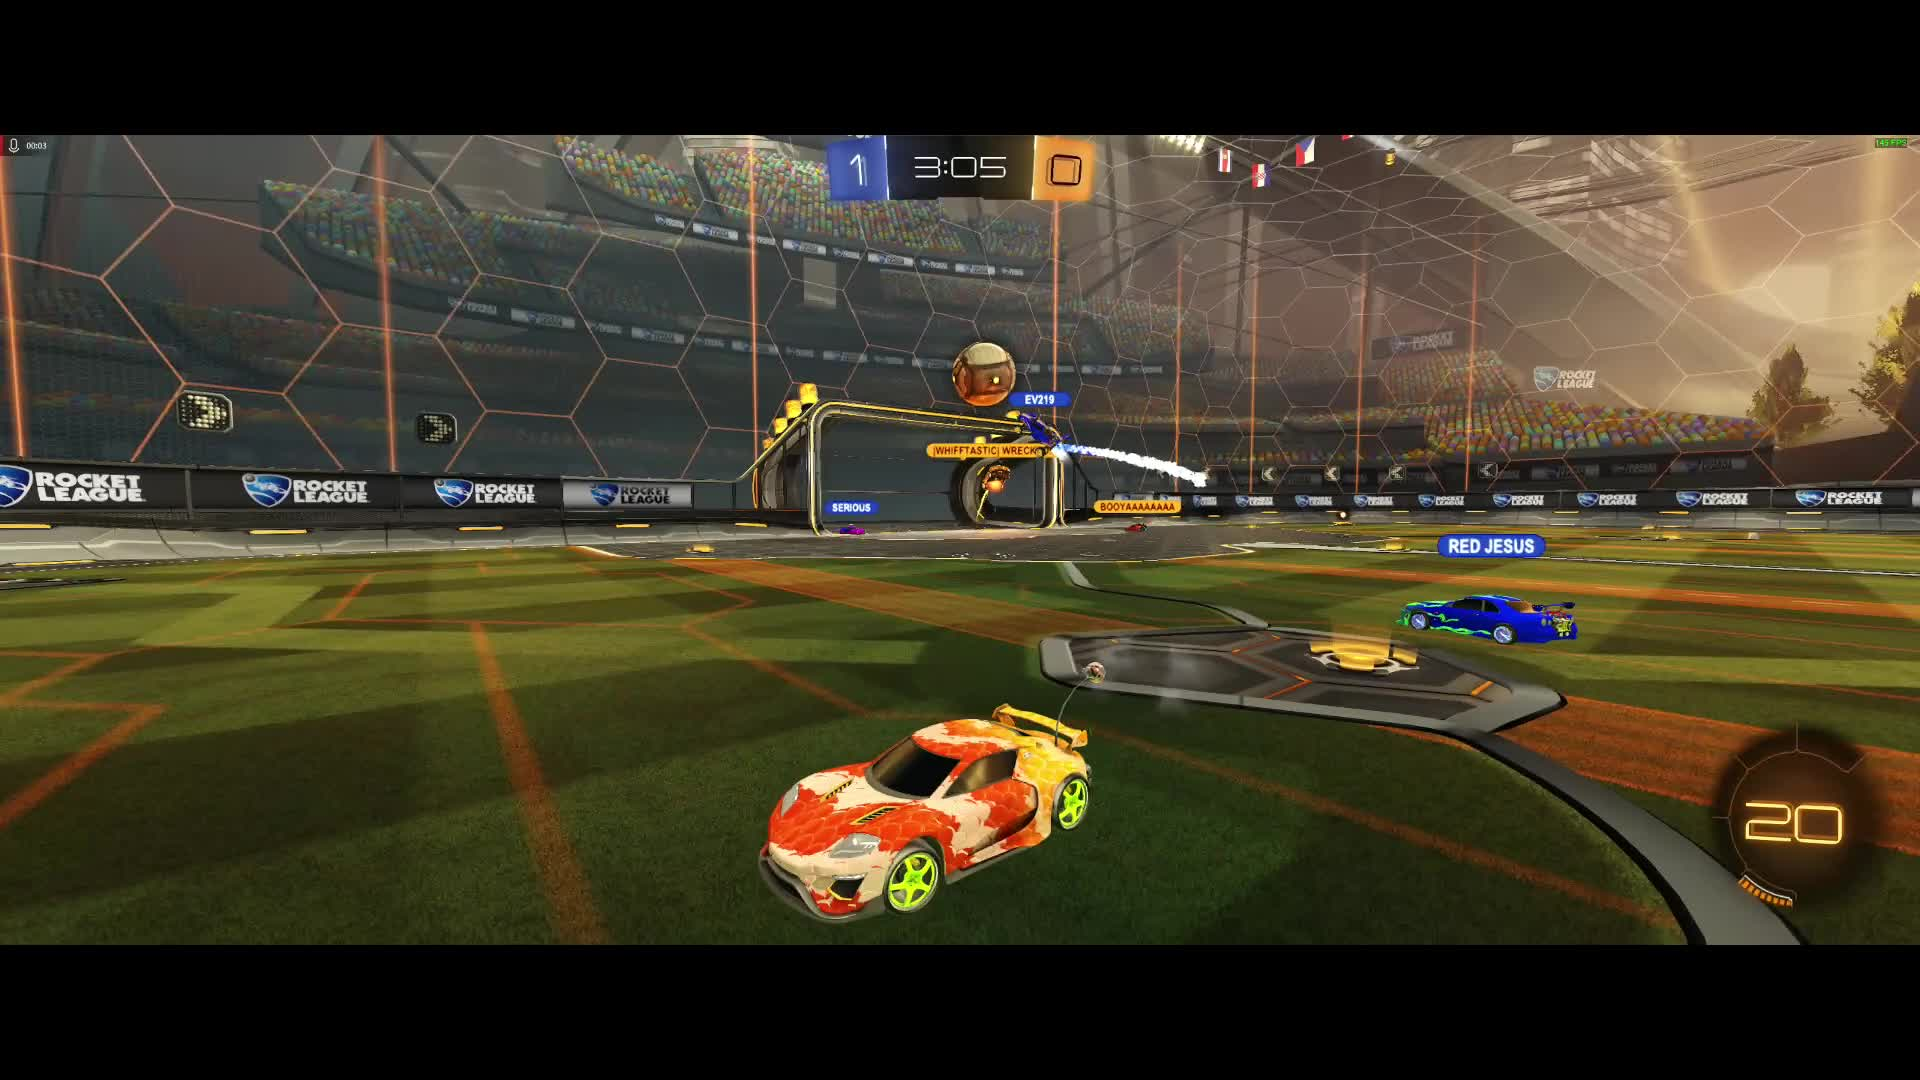 RocketLeague, mobius with the save! GIFs